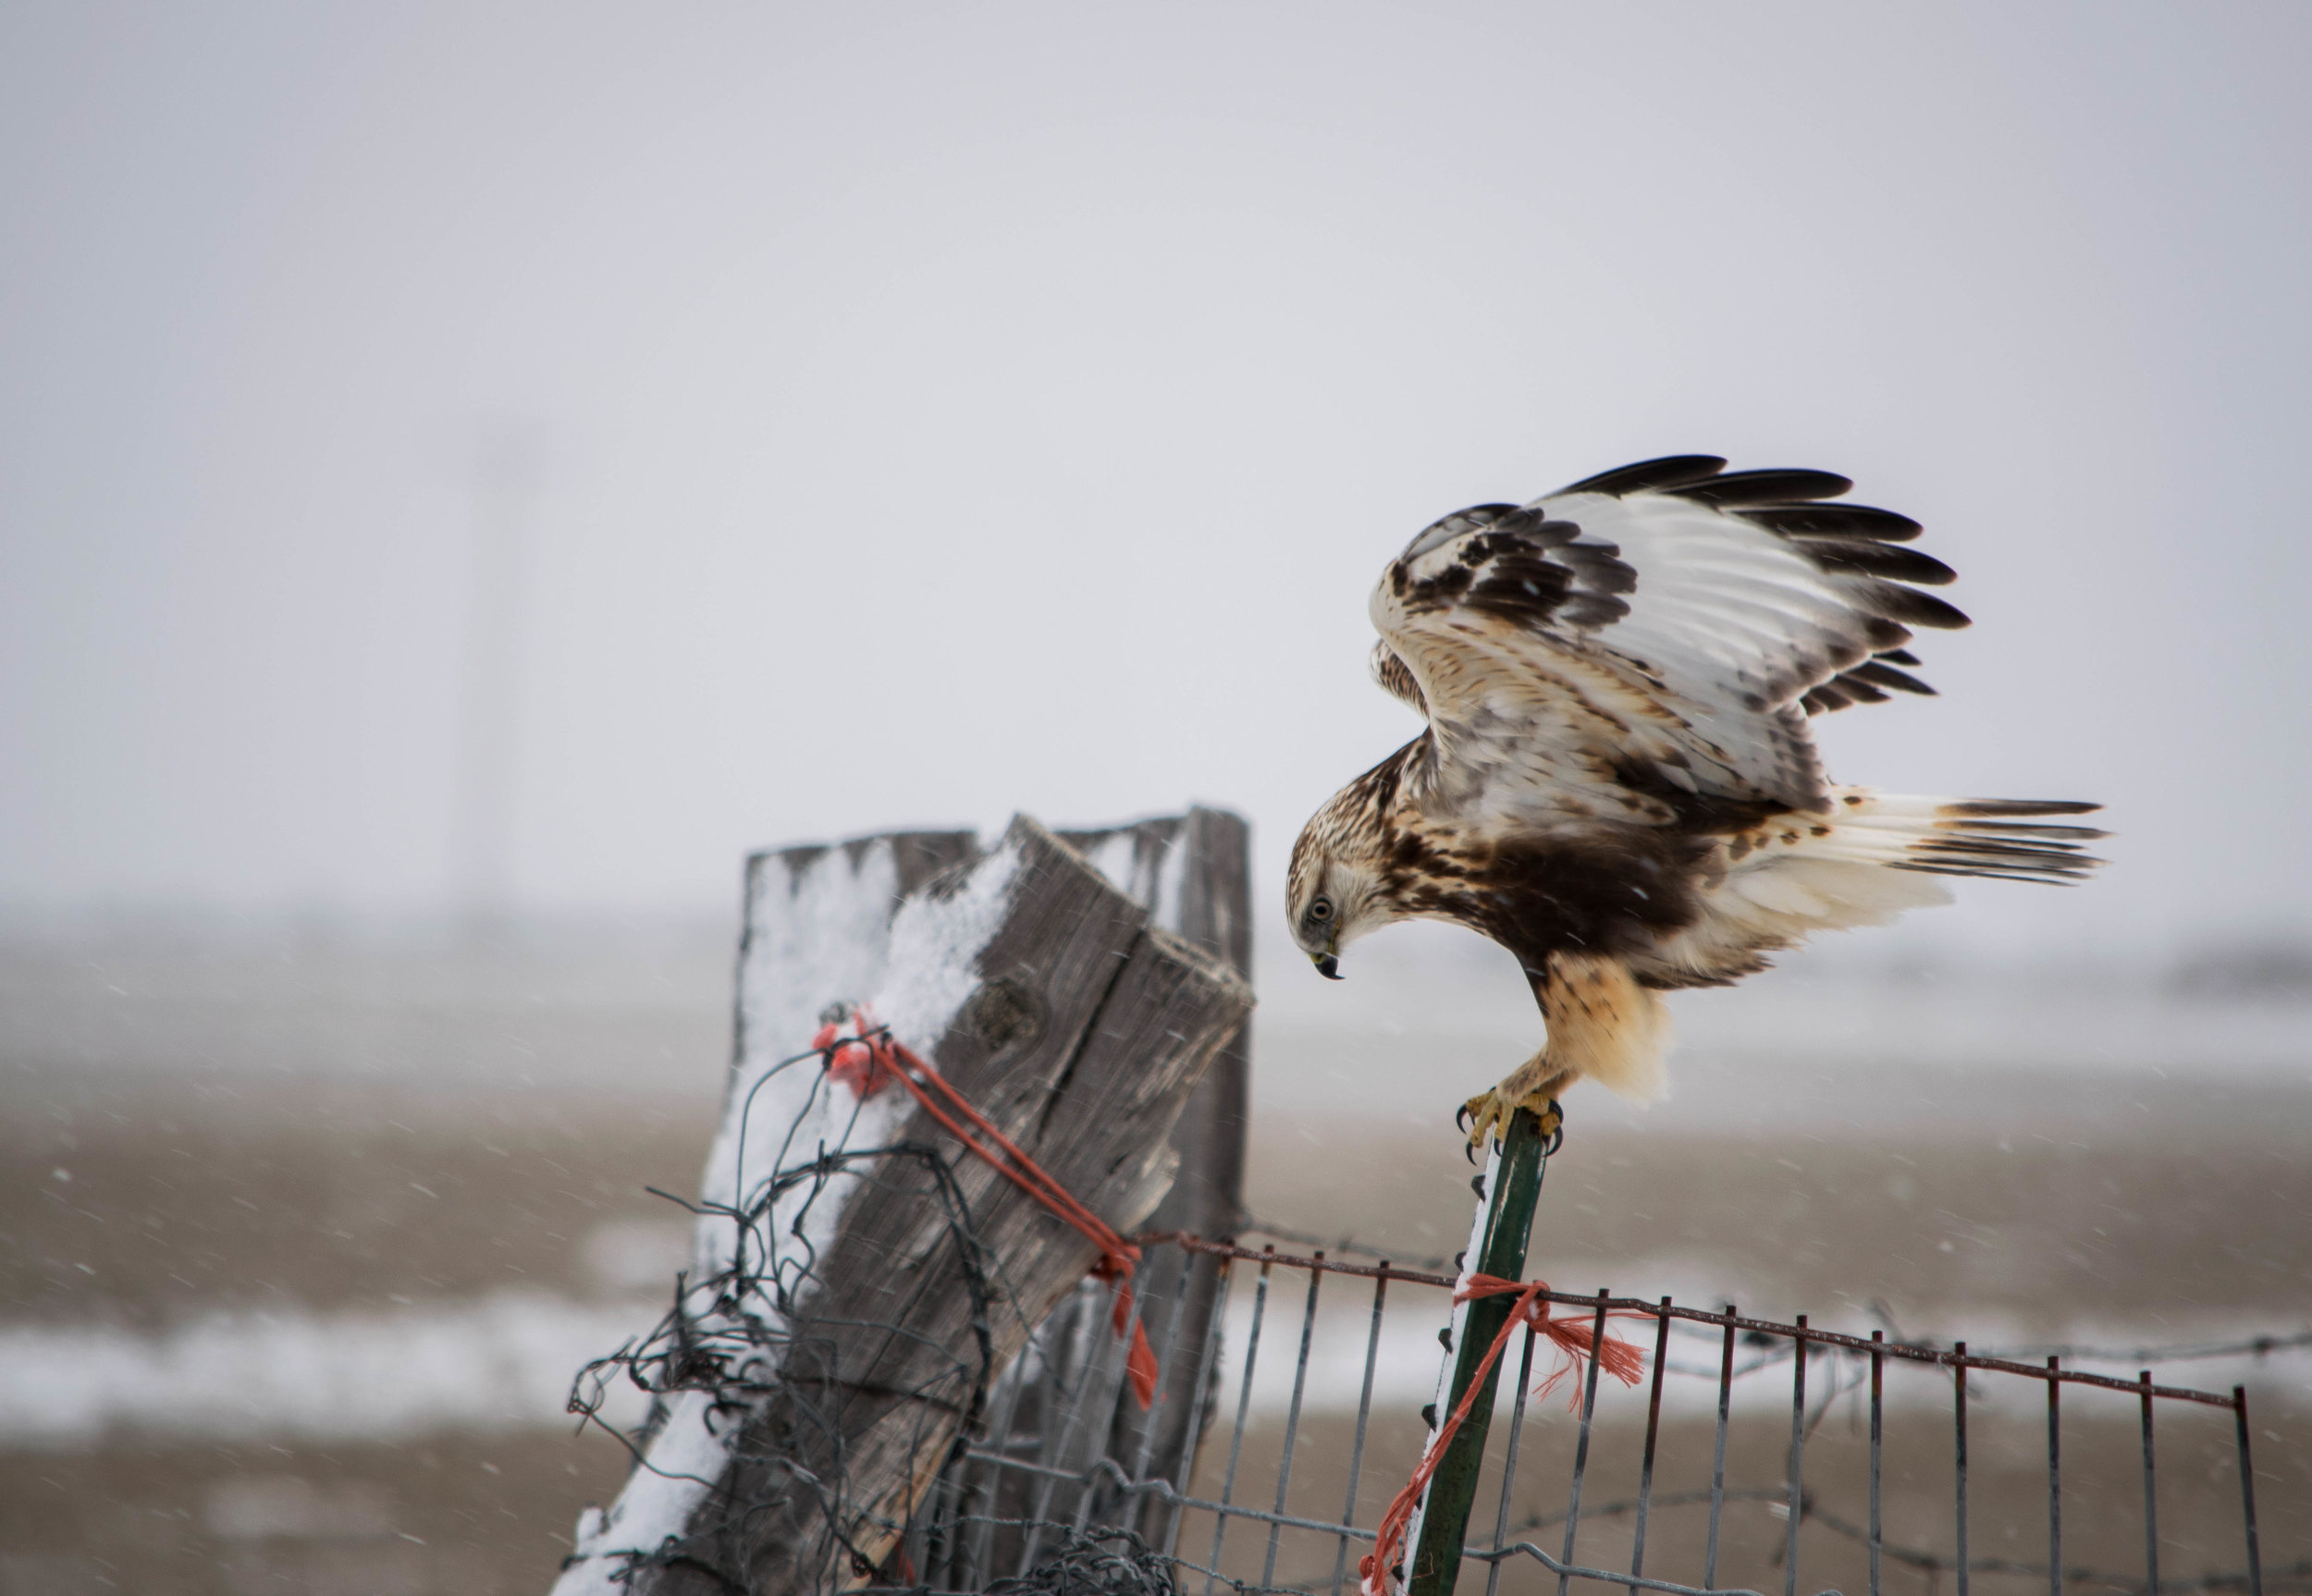 """- Rough-legged Hawk (Buteo lagopus)Rough-legged Hawks prefer arctic and subarctic habitats, but winter in open areas and fields in the United States. Rough-legged Hawks weigh about 25.2-49.4 oz. with wingspan of 52-54.3 in. Startled adults may make a """"mew"""" similar to a cat while nesting. Rough-legged Hawks mostly eat small mammals, but sometimes eat other birds. They are protected on the US Migratory Bird lists.Photo Credits: Jon Nelson"""